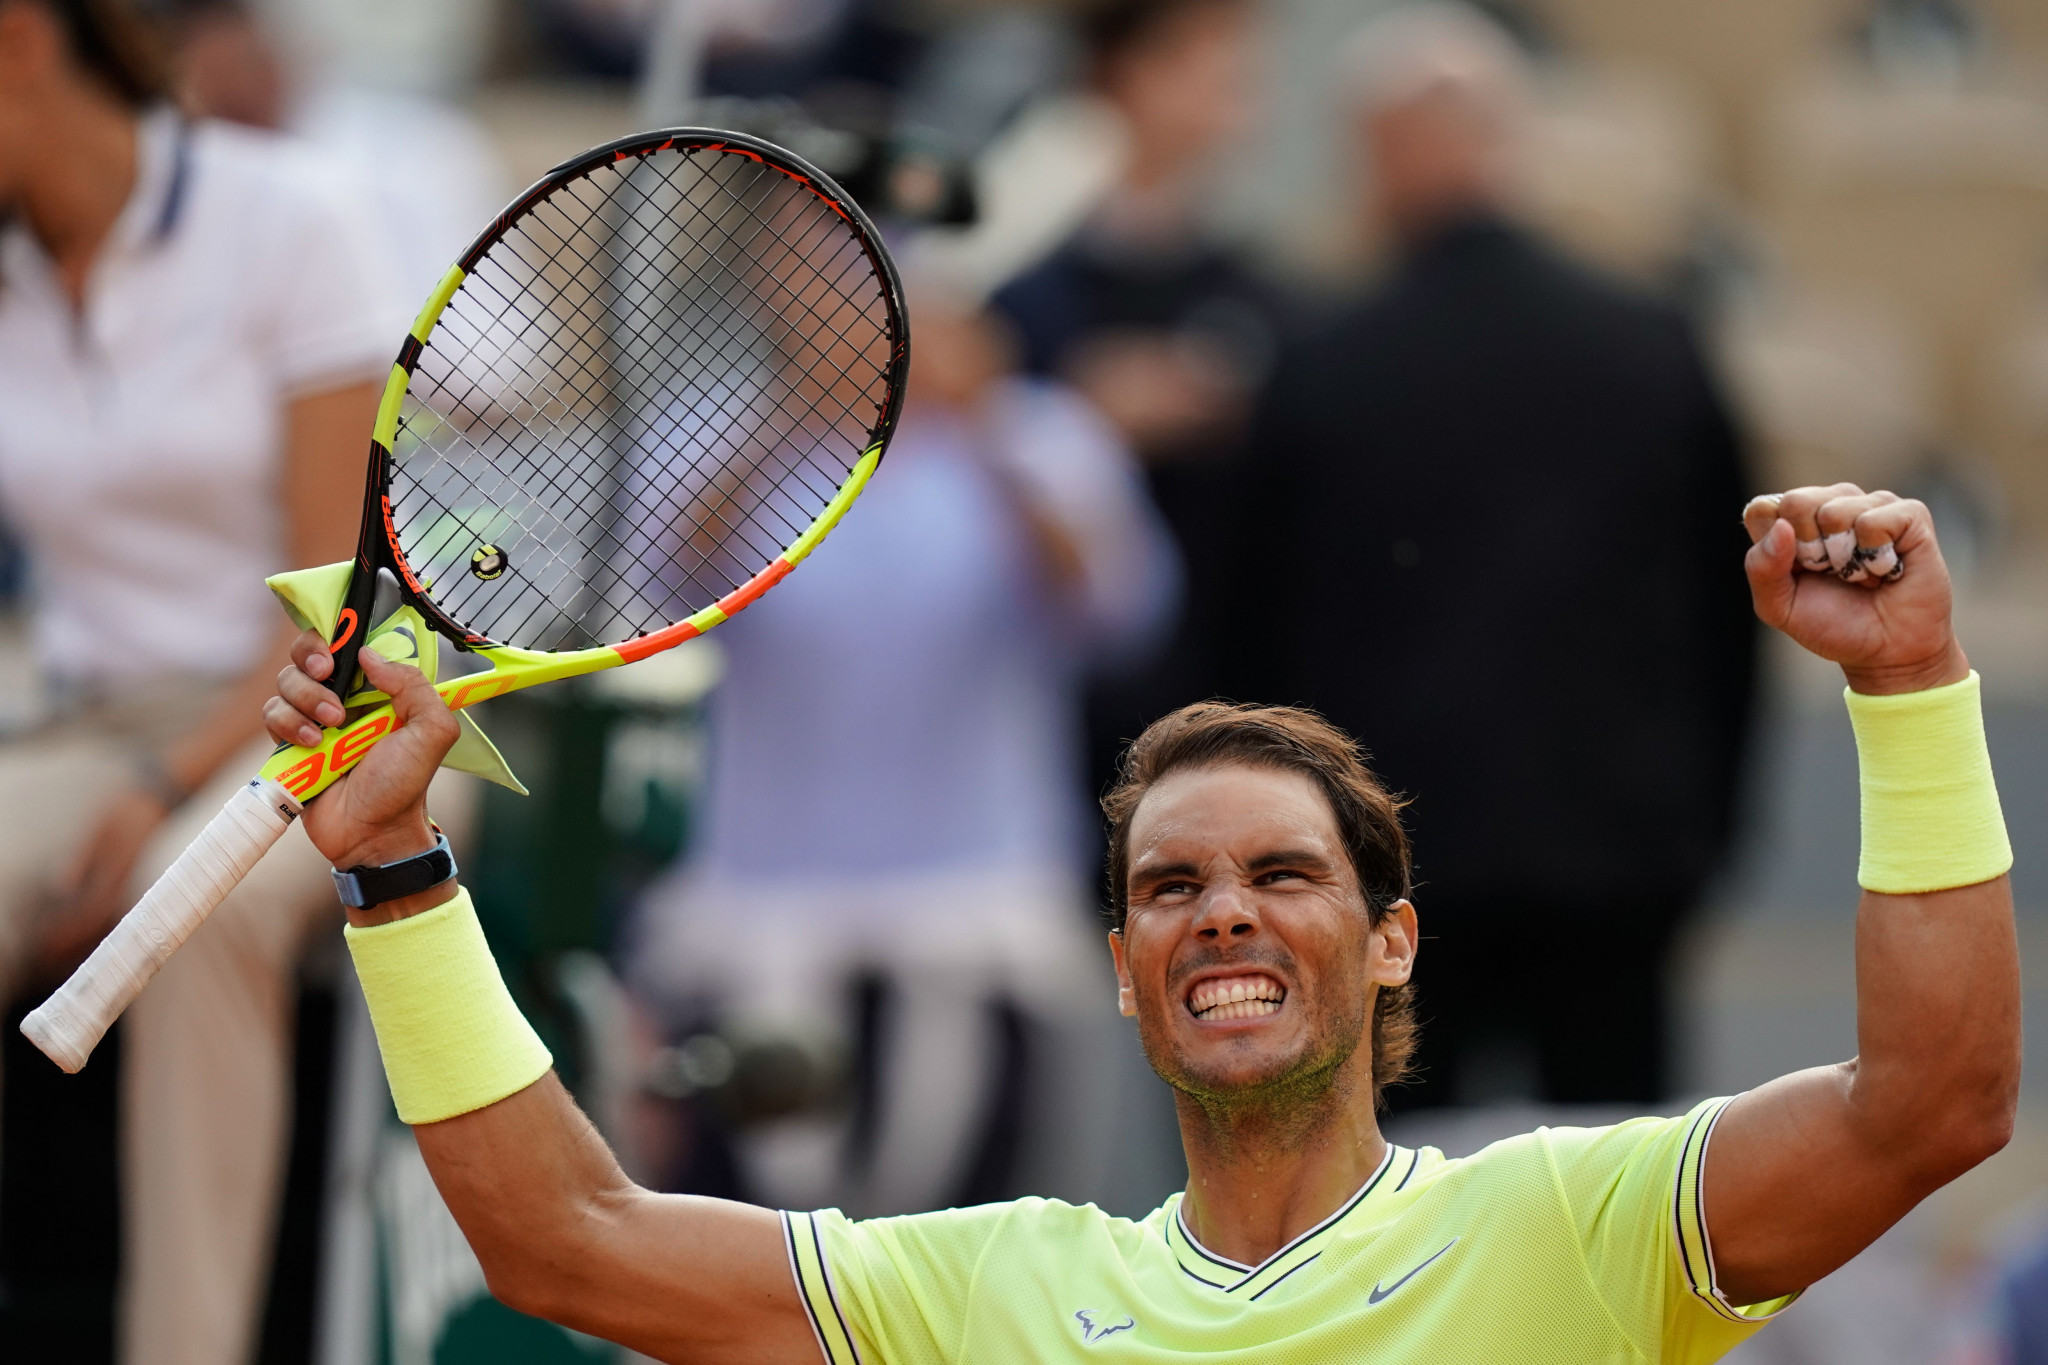 Nadal sets up titanic clash with Federer at French Open